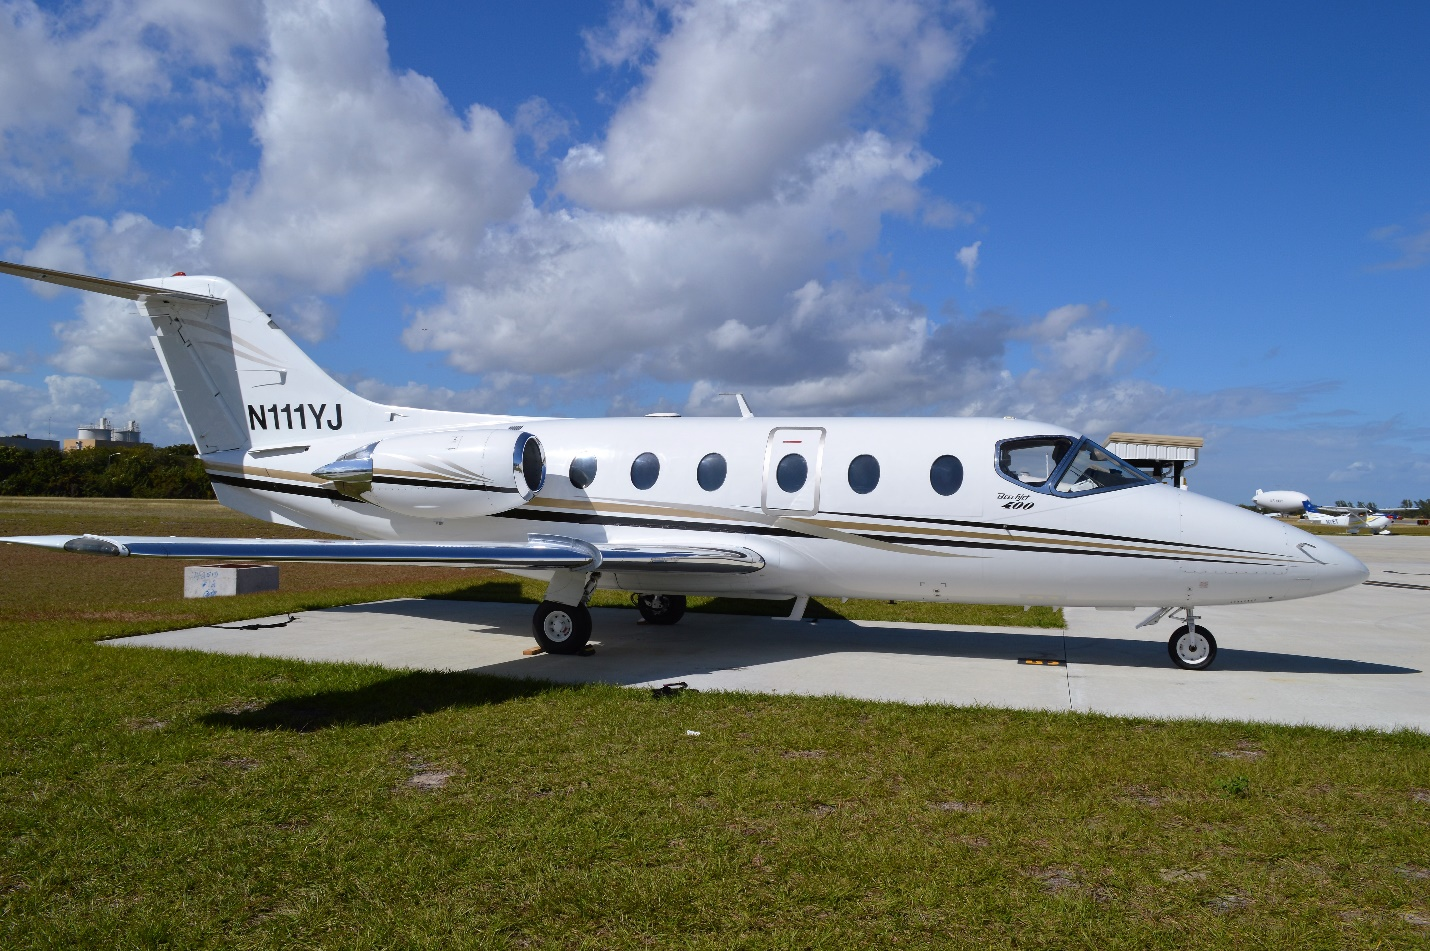 Aircraft Listing - Beechjet 400 listed for sale